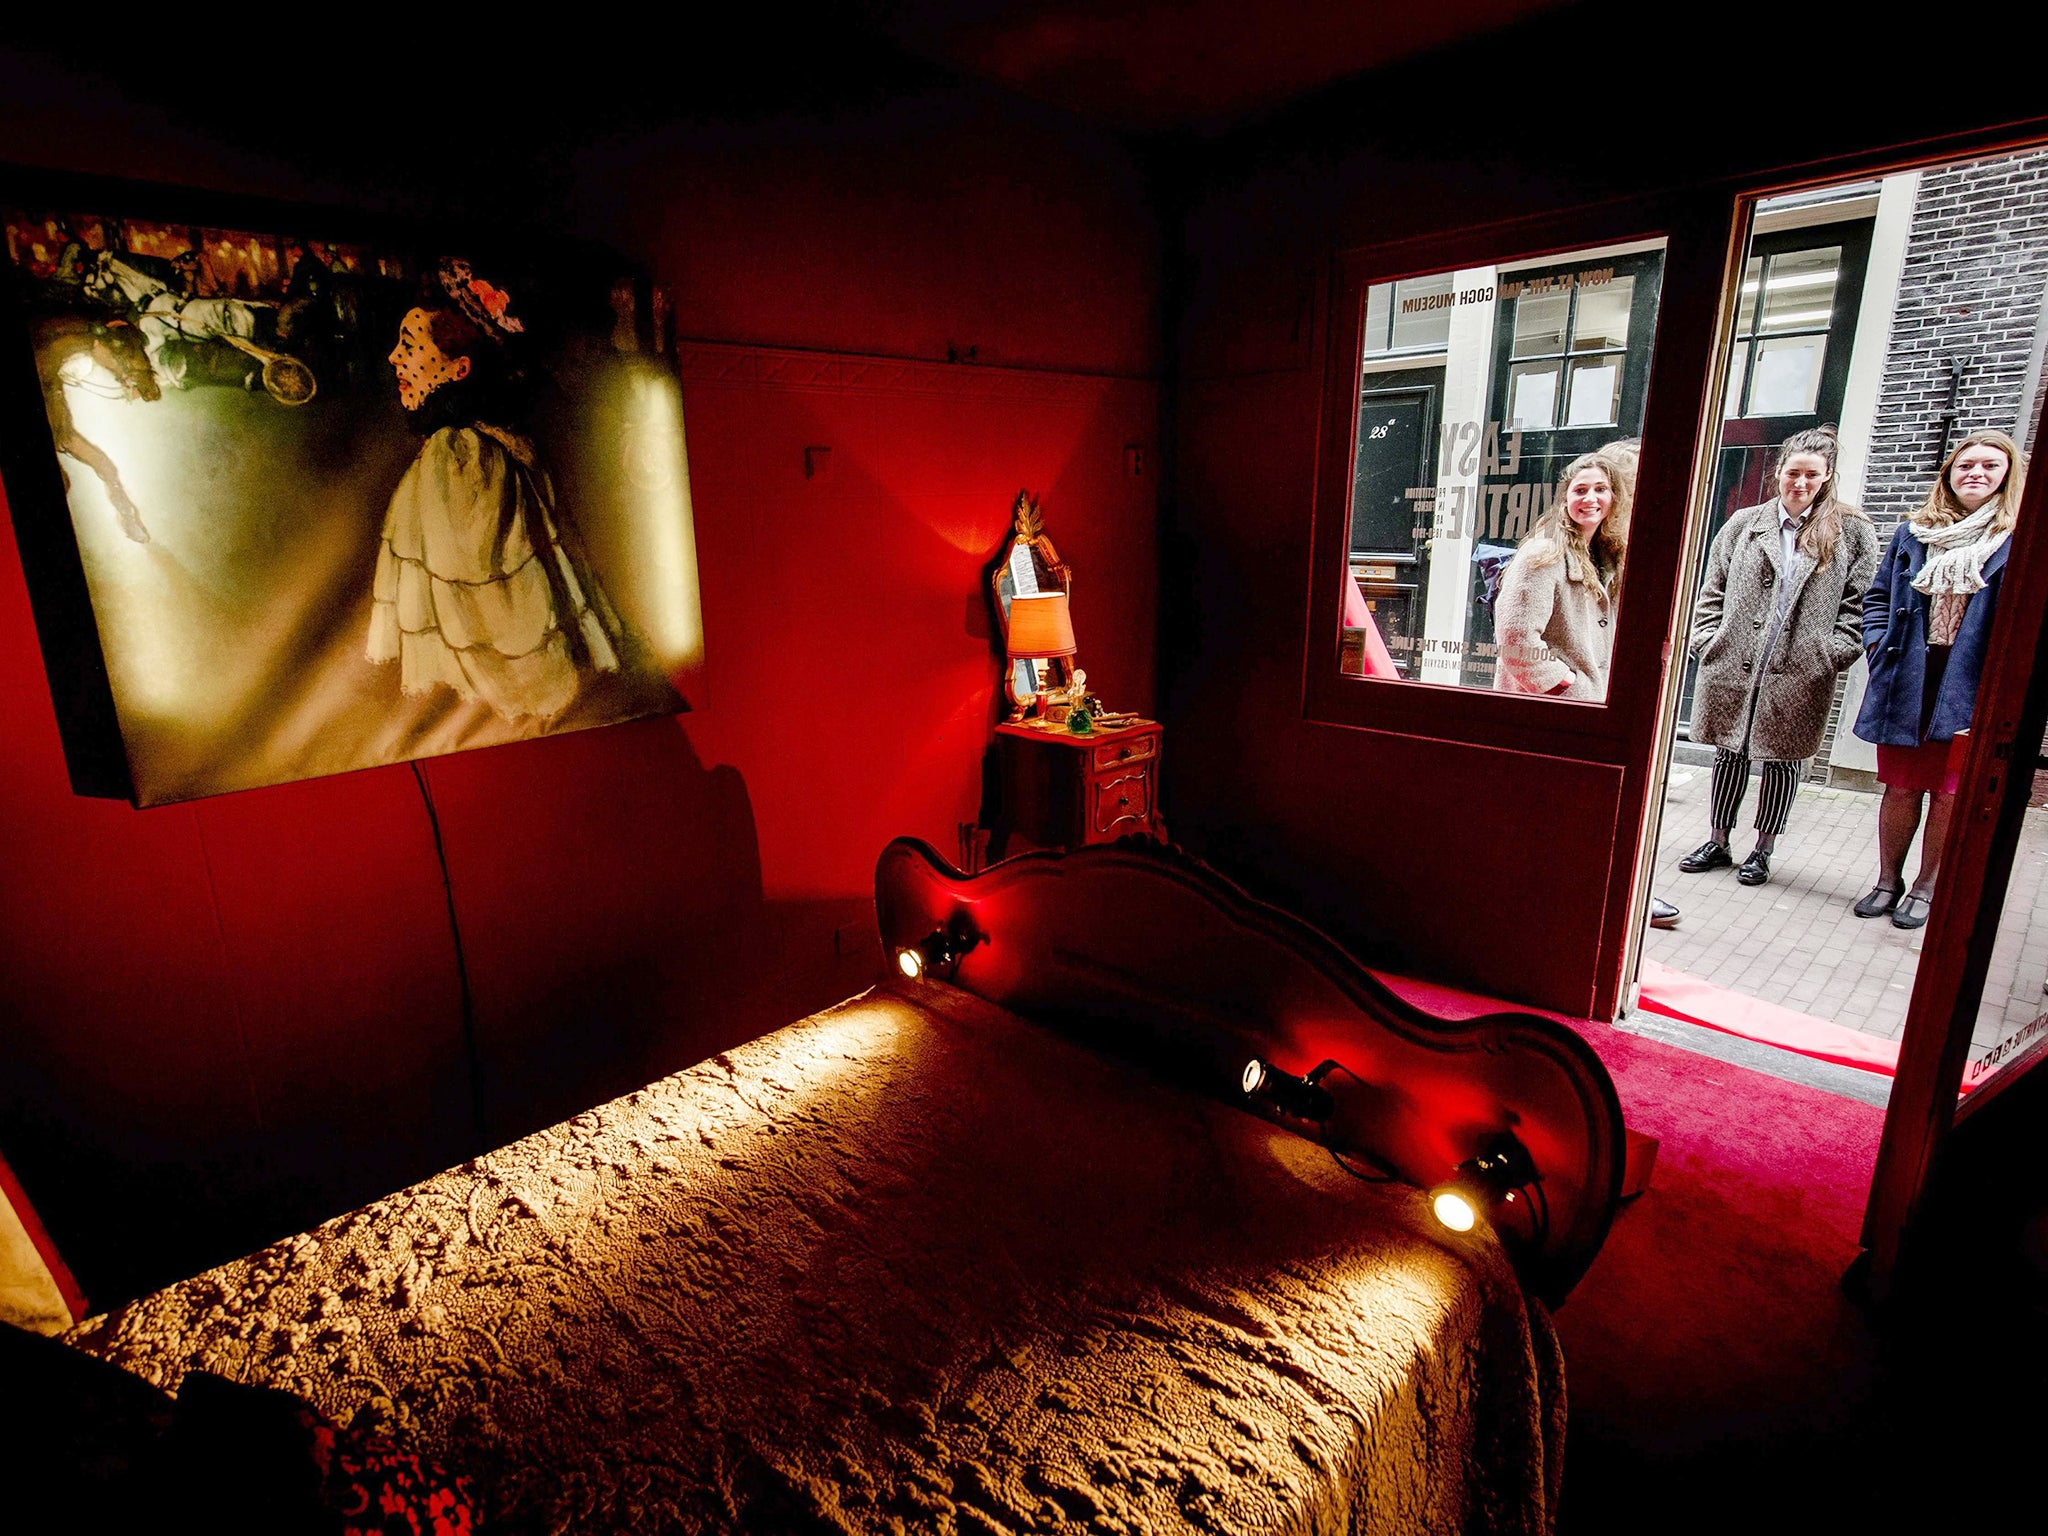 The French got it wrong on prostitution - it's time to start taxing the sex industry